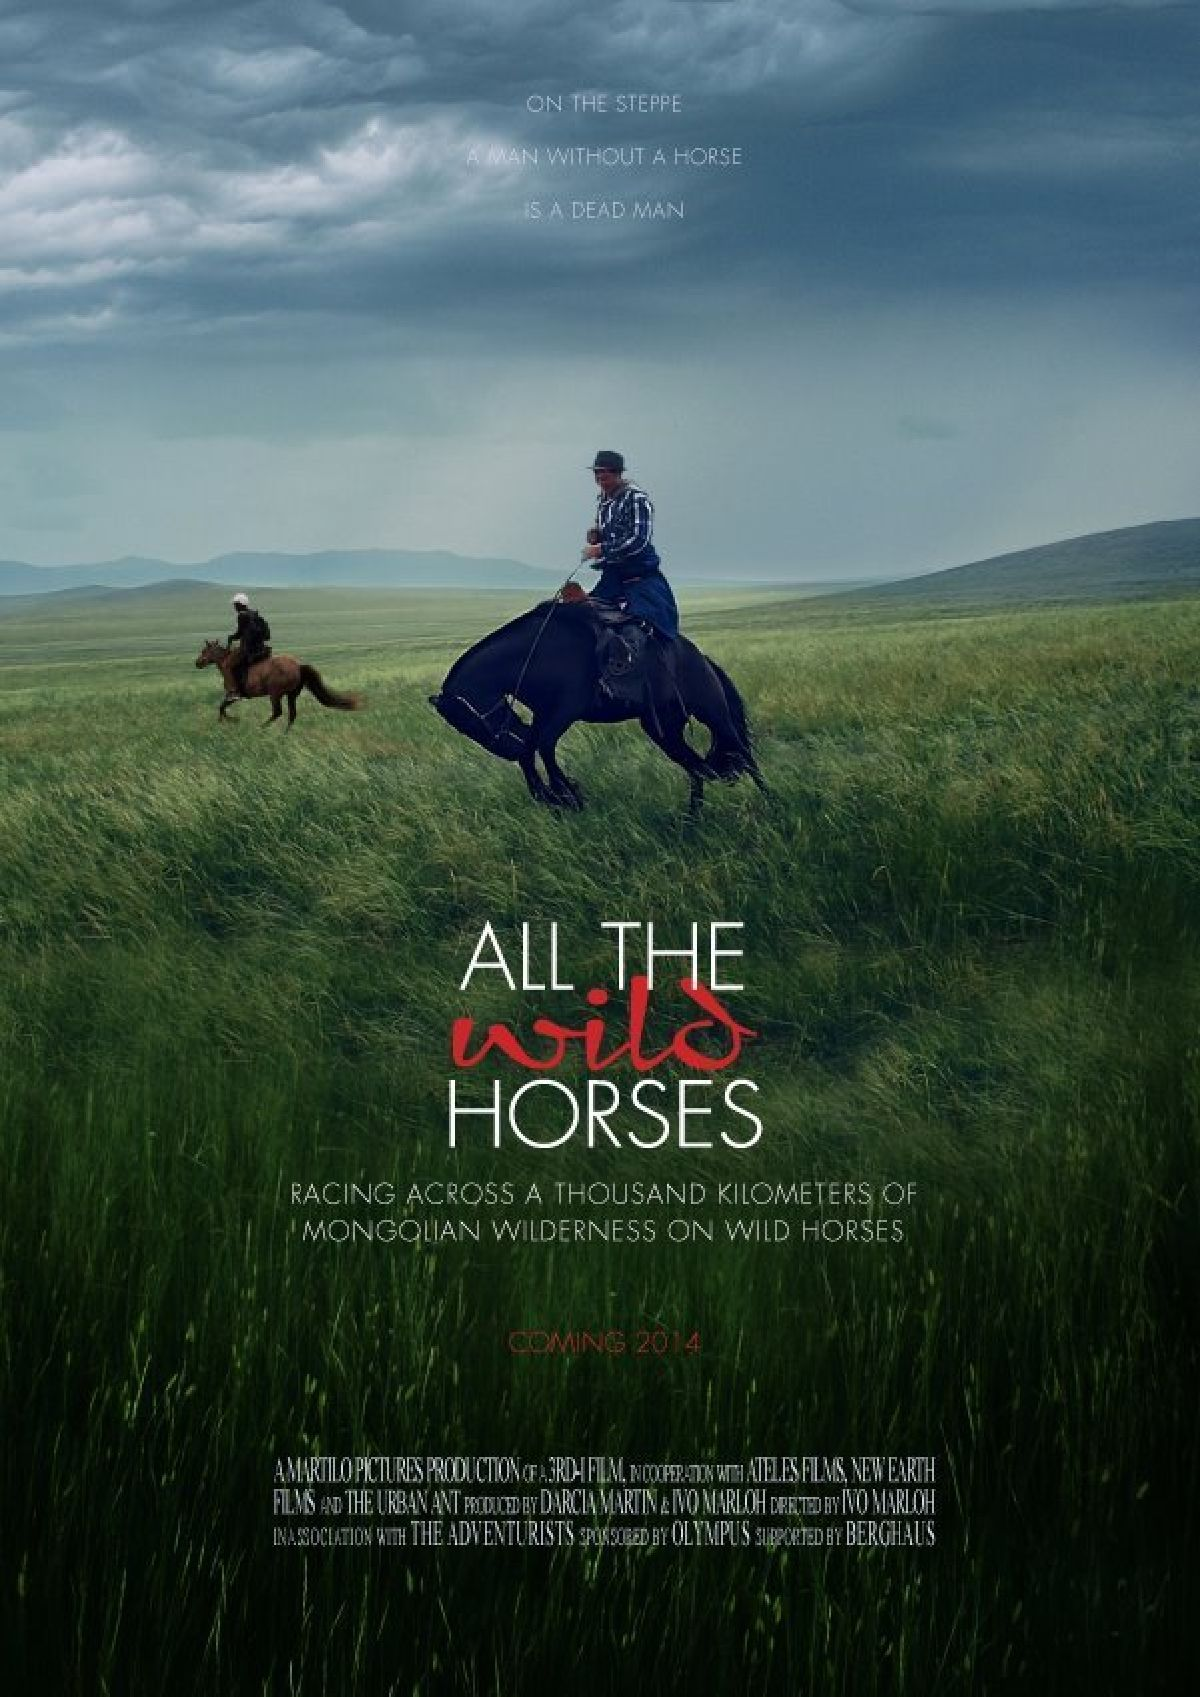 'All The Wild Horses' movie poster